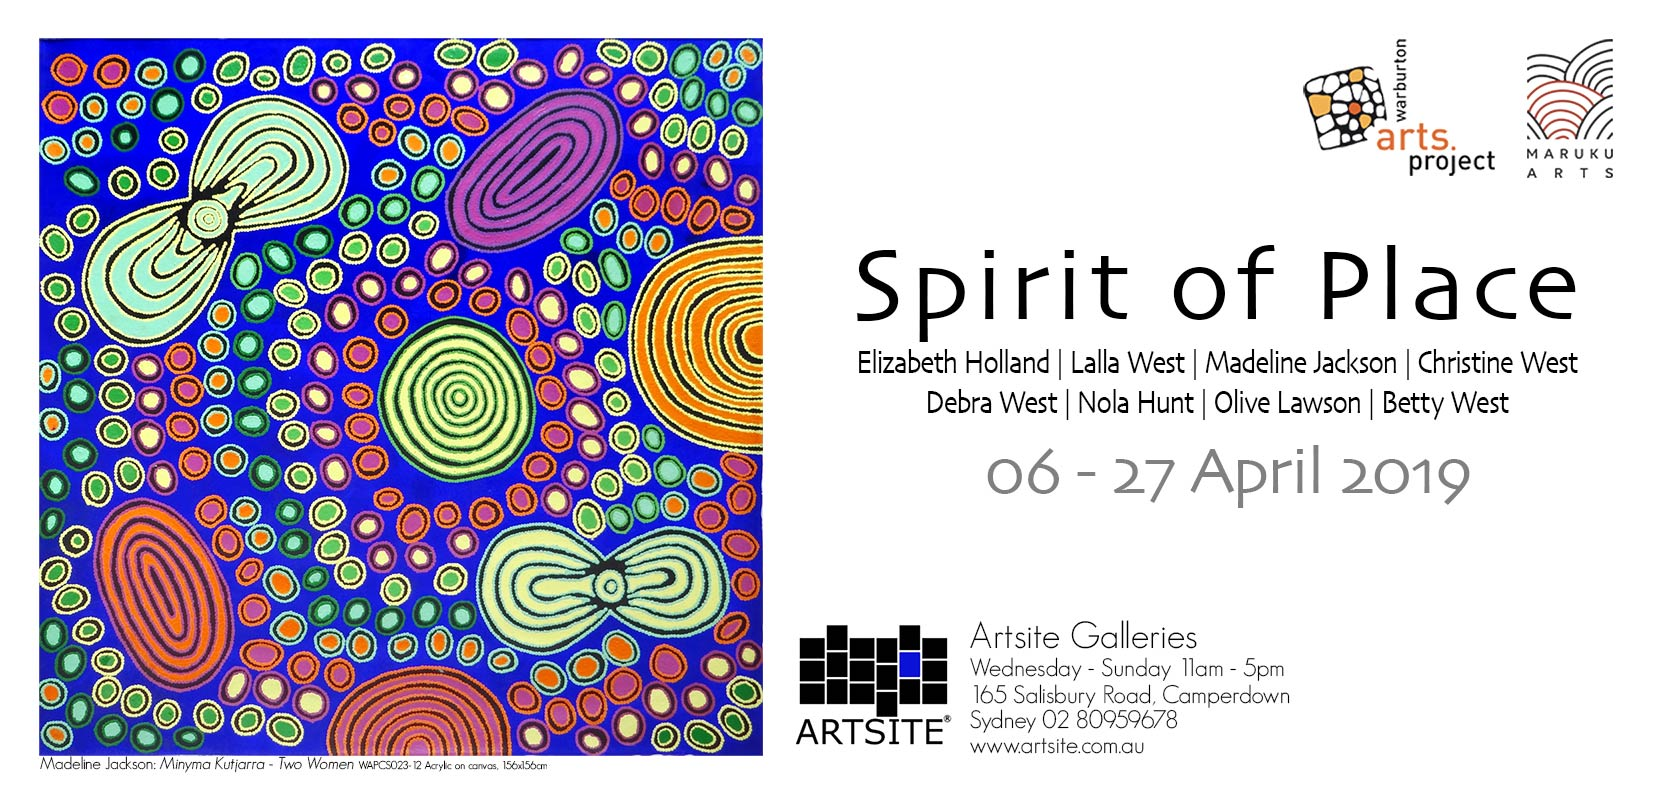 Spirit of Place | Artsite Galleries | Sydney | 06 - 28 April (extended to 26 May) 2019 | Warburton Arts Project | Elizabeth Holland | Lalla West | Madeline Jackson | Christine West | Debra West | Nola Hunt | Olive Lawson | Betty West | Maruku Arts.